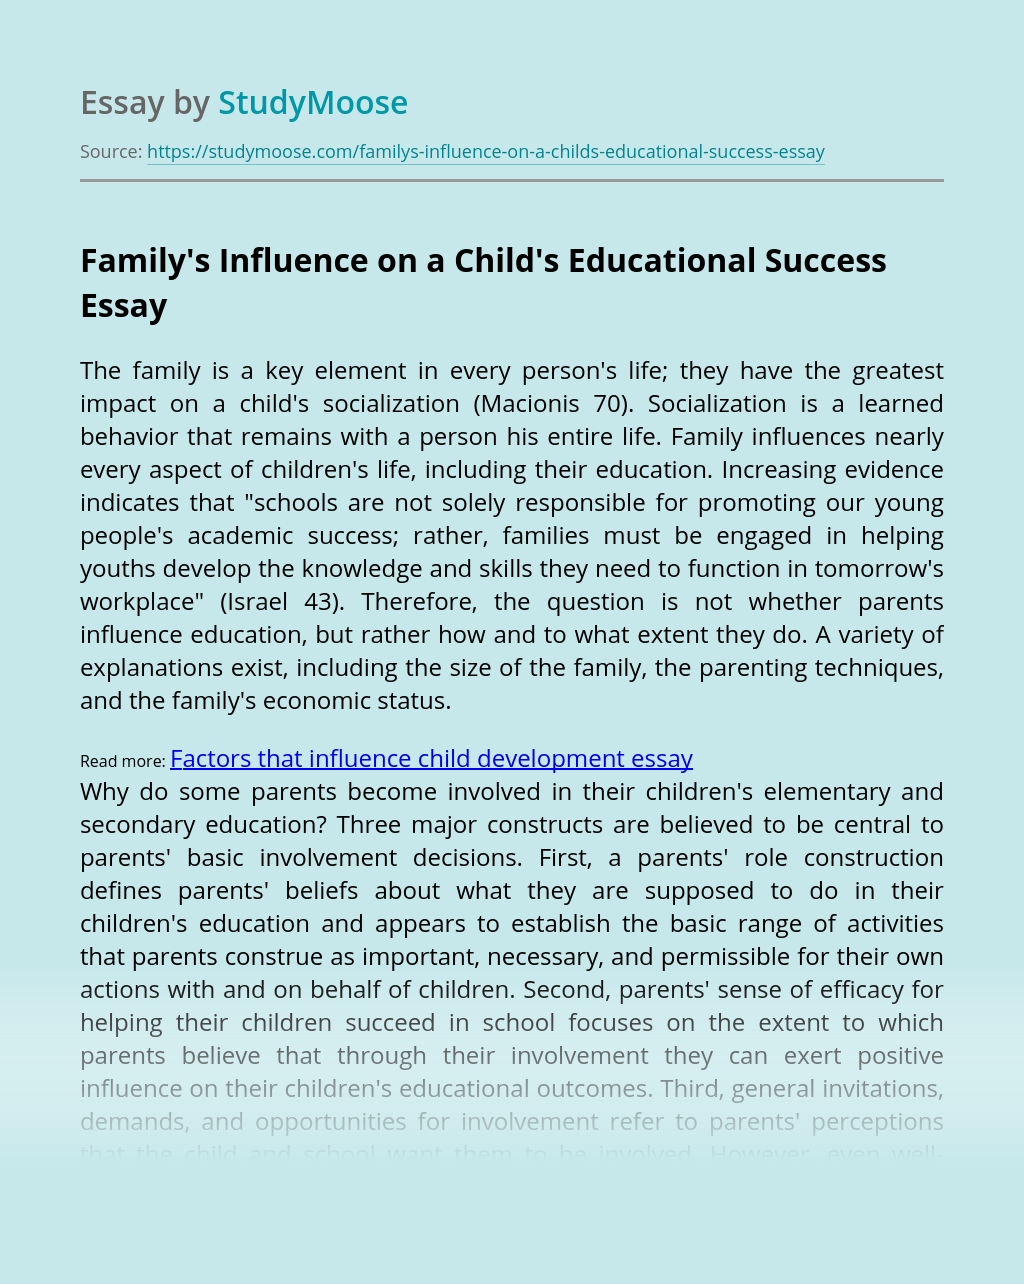 Family's Influence on a Child's Educational Success